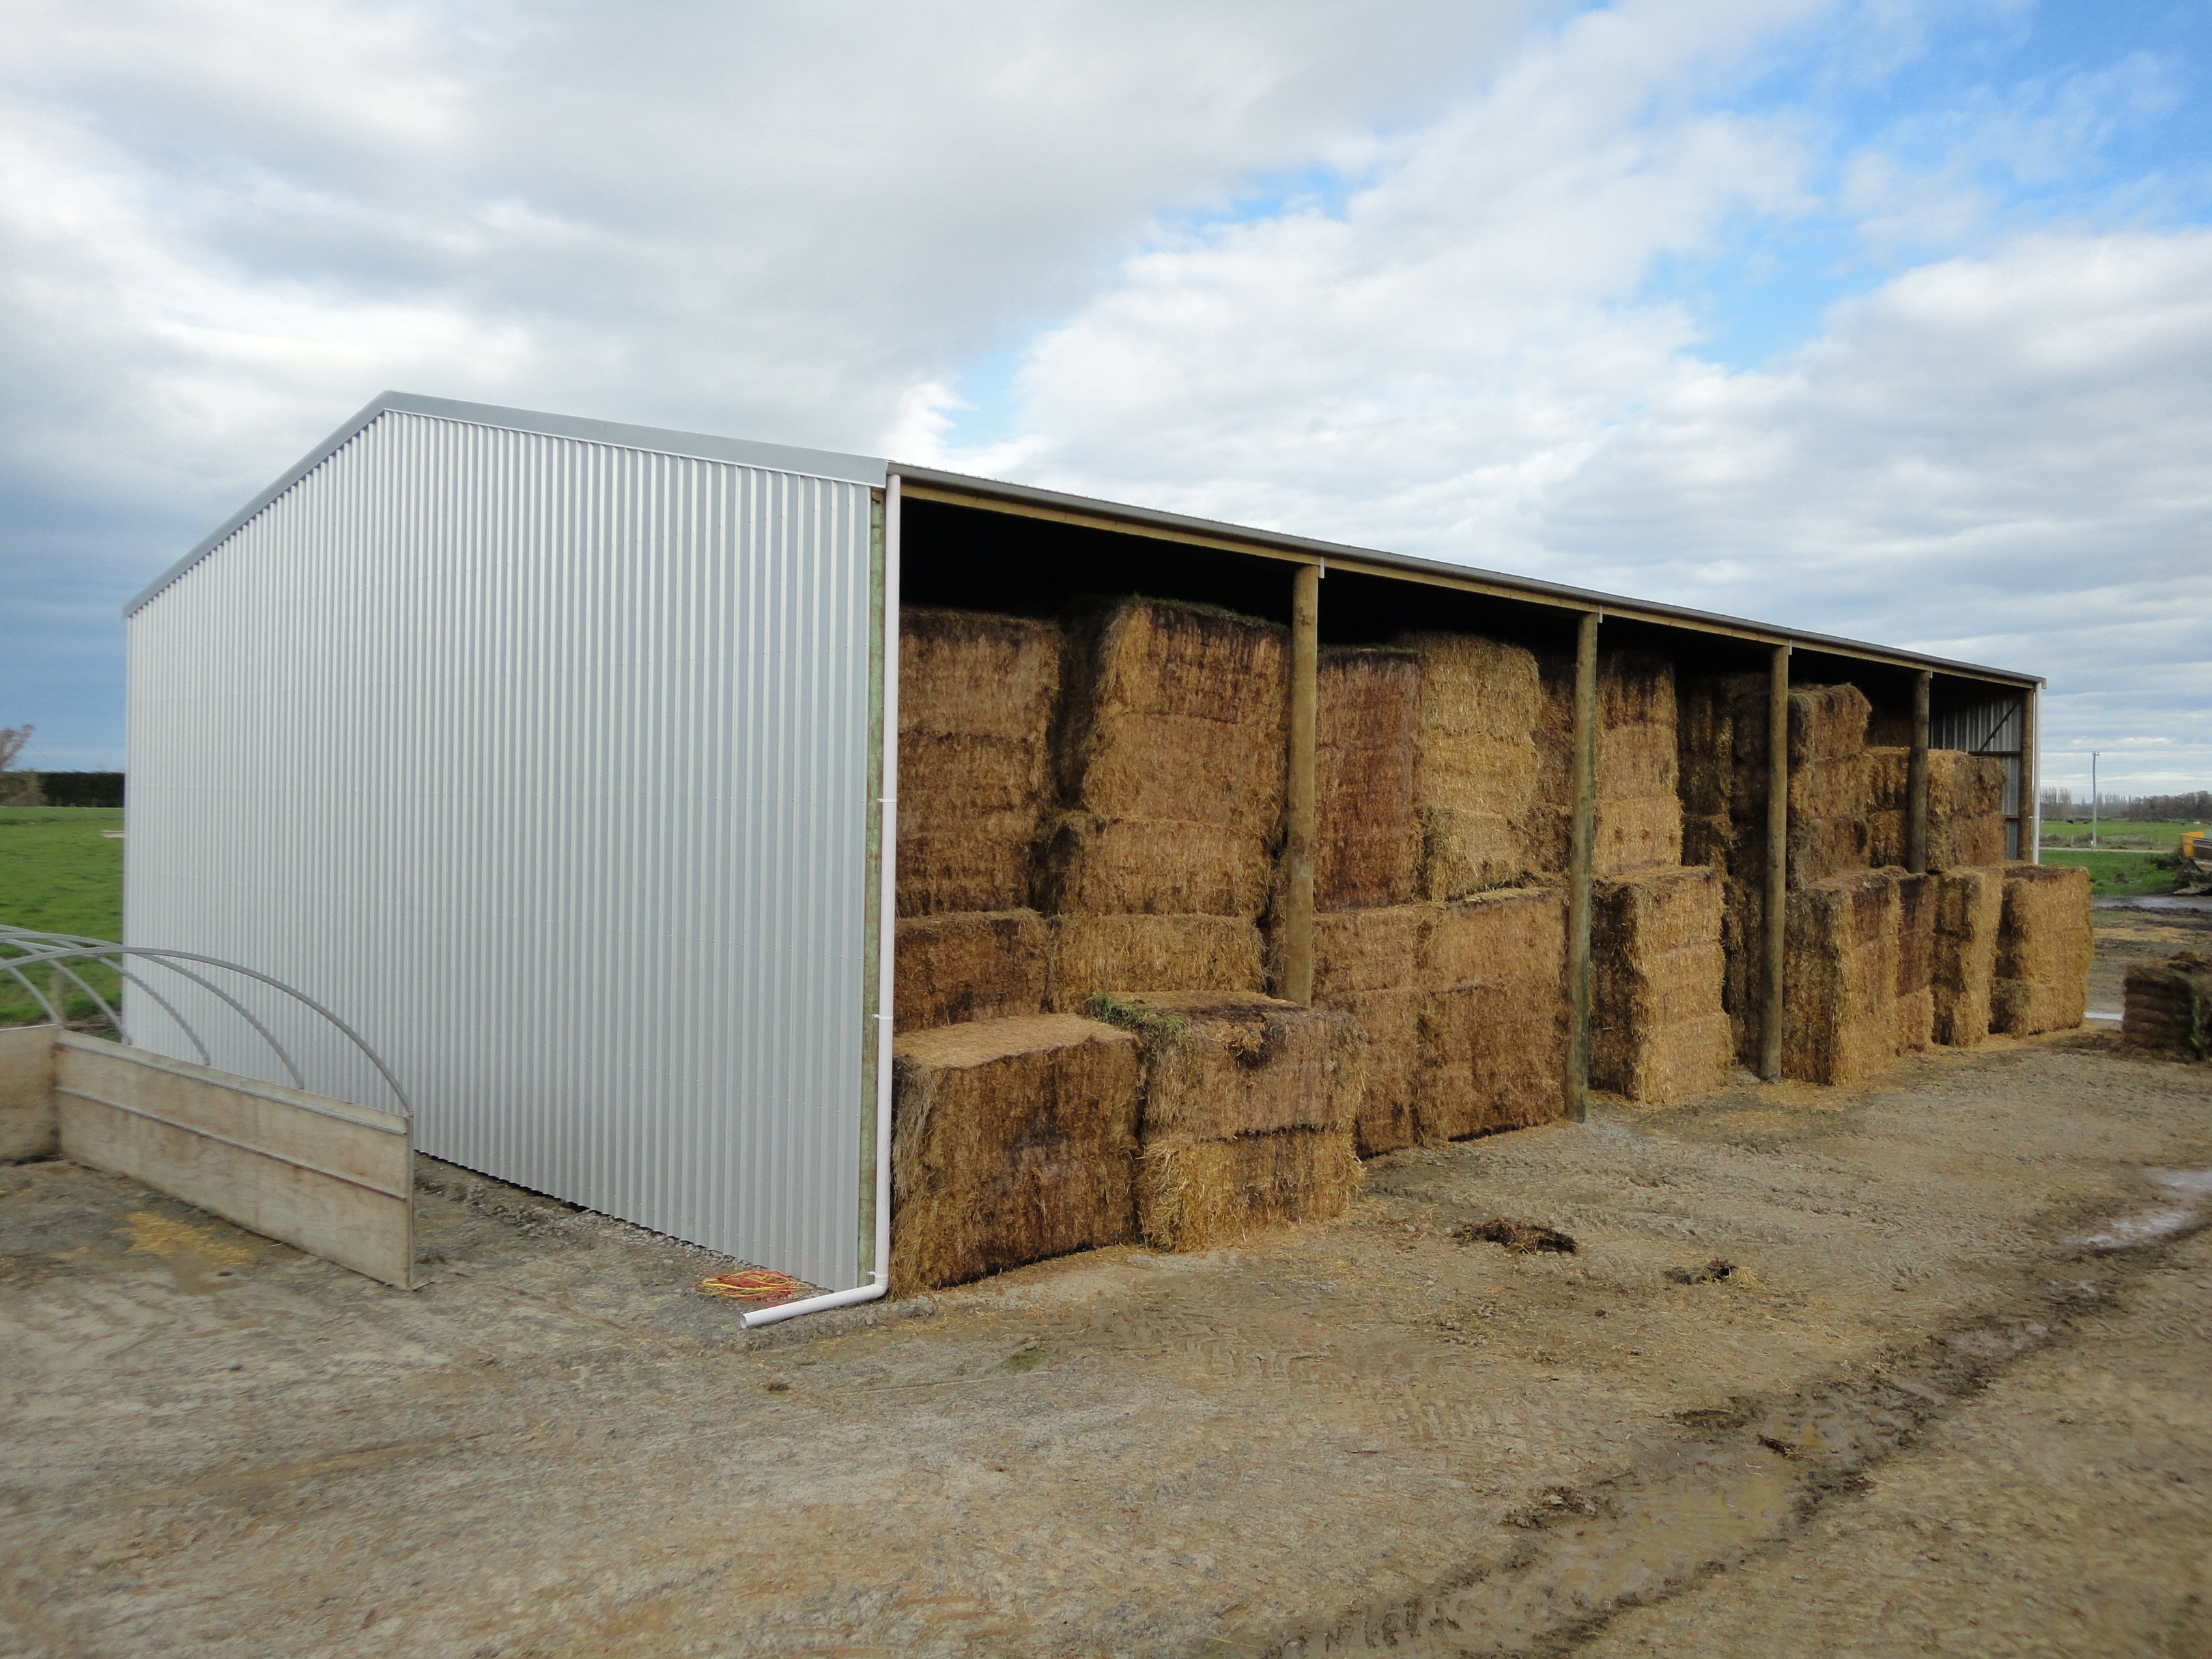 shed open at front for storing hay